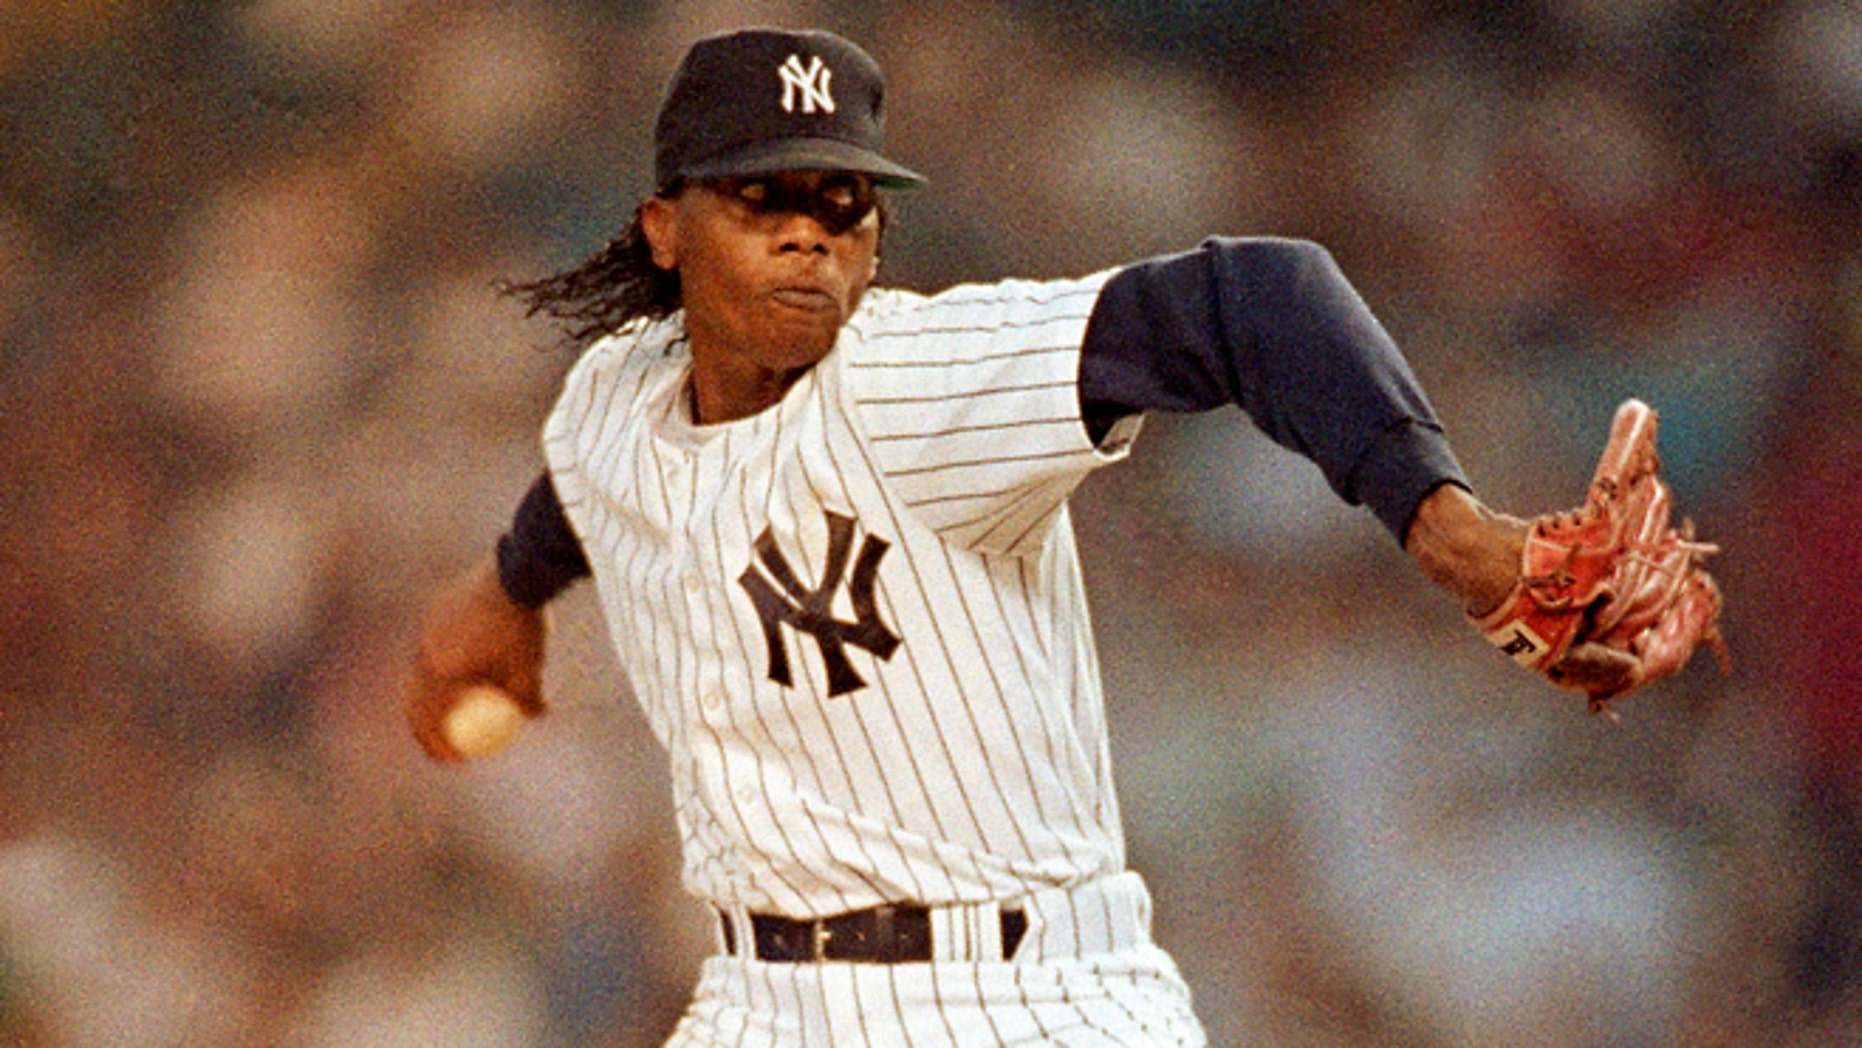 FILE 1991: New York Yankees' Pascual Perez throws during the second inning of a baseball game against the California Angels at Yankee Stadium in New York.